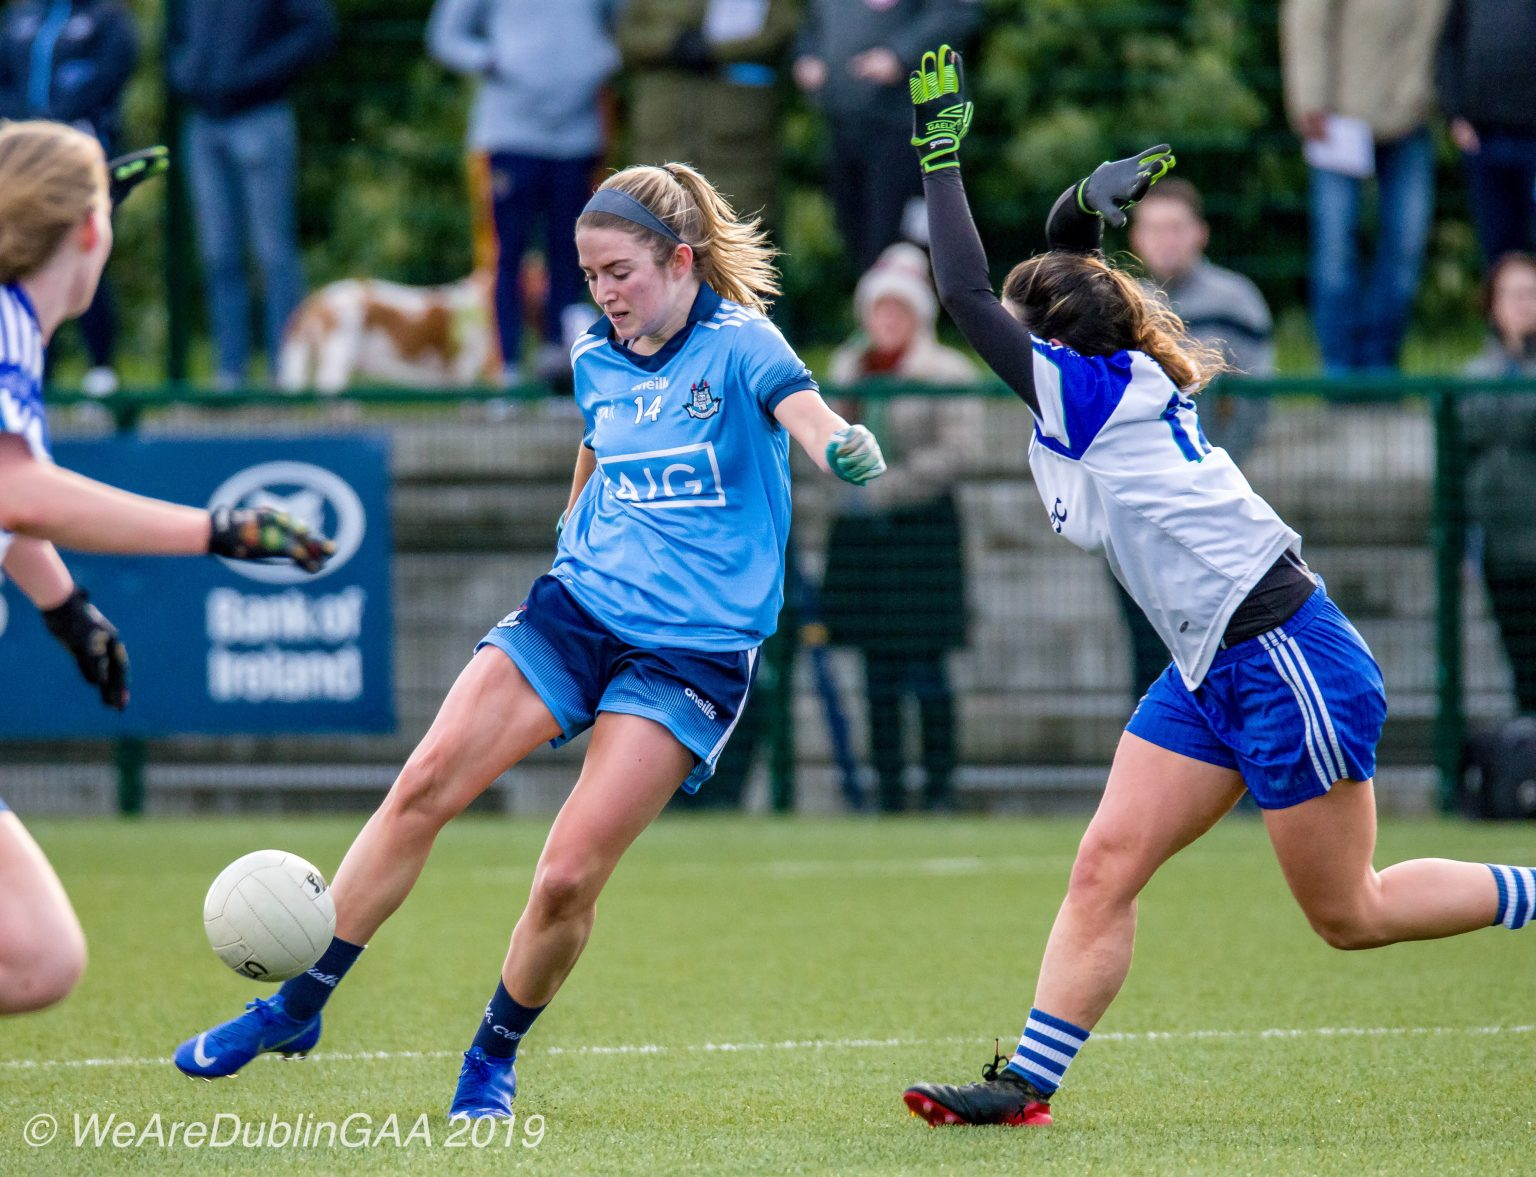 Dublin Ladies footballer in a sky blue jersey and navy shorts takes a shot at goal before a Monaghan player in a white jersey with blue sleeves and blue shorts during their Lidl Ladies NFL game